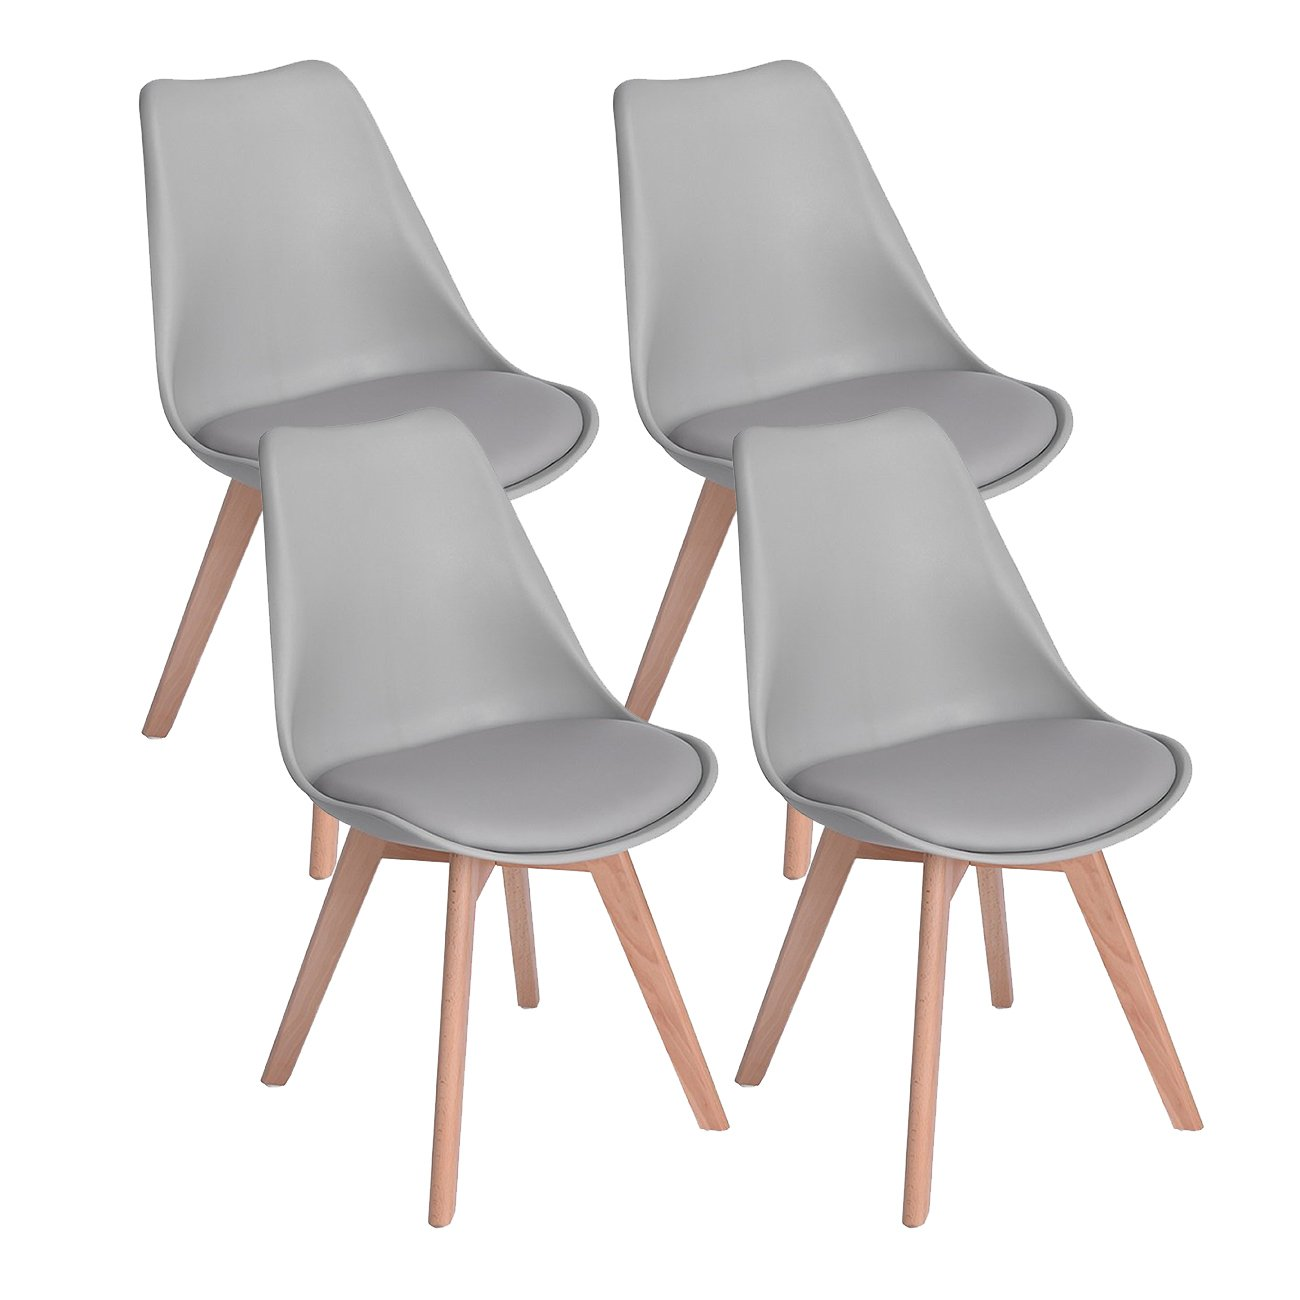 DORAFAIR Set of 8 Tulip Modern Design Dining Chairs Retro Lounge Chairs  With Solid Wood Beech Legs,Kitchen chairs With Padded Seat,Grey